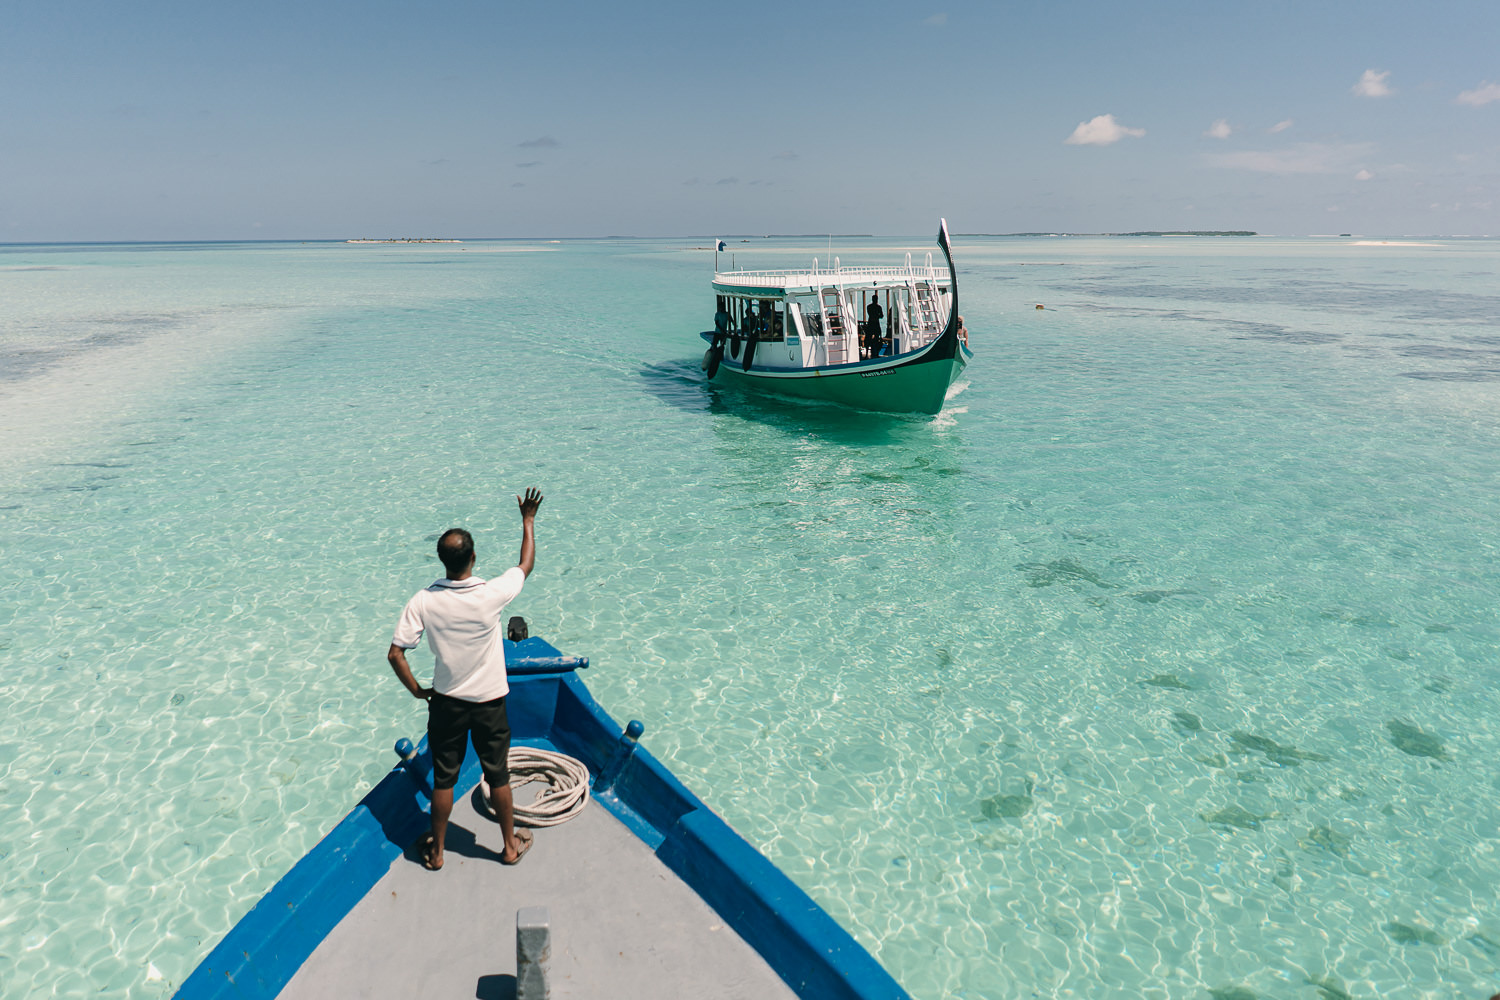 wedding photographer in maldives anniversary trip cocoon drone mavic aerial photographer